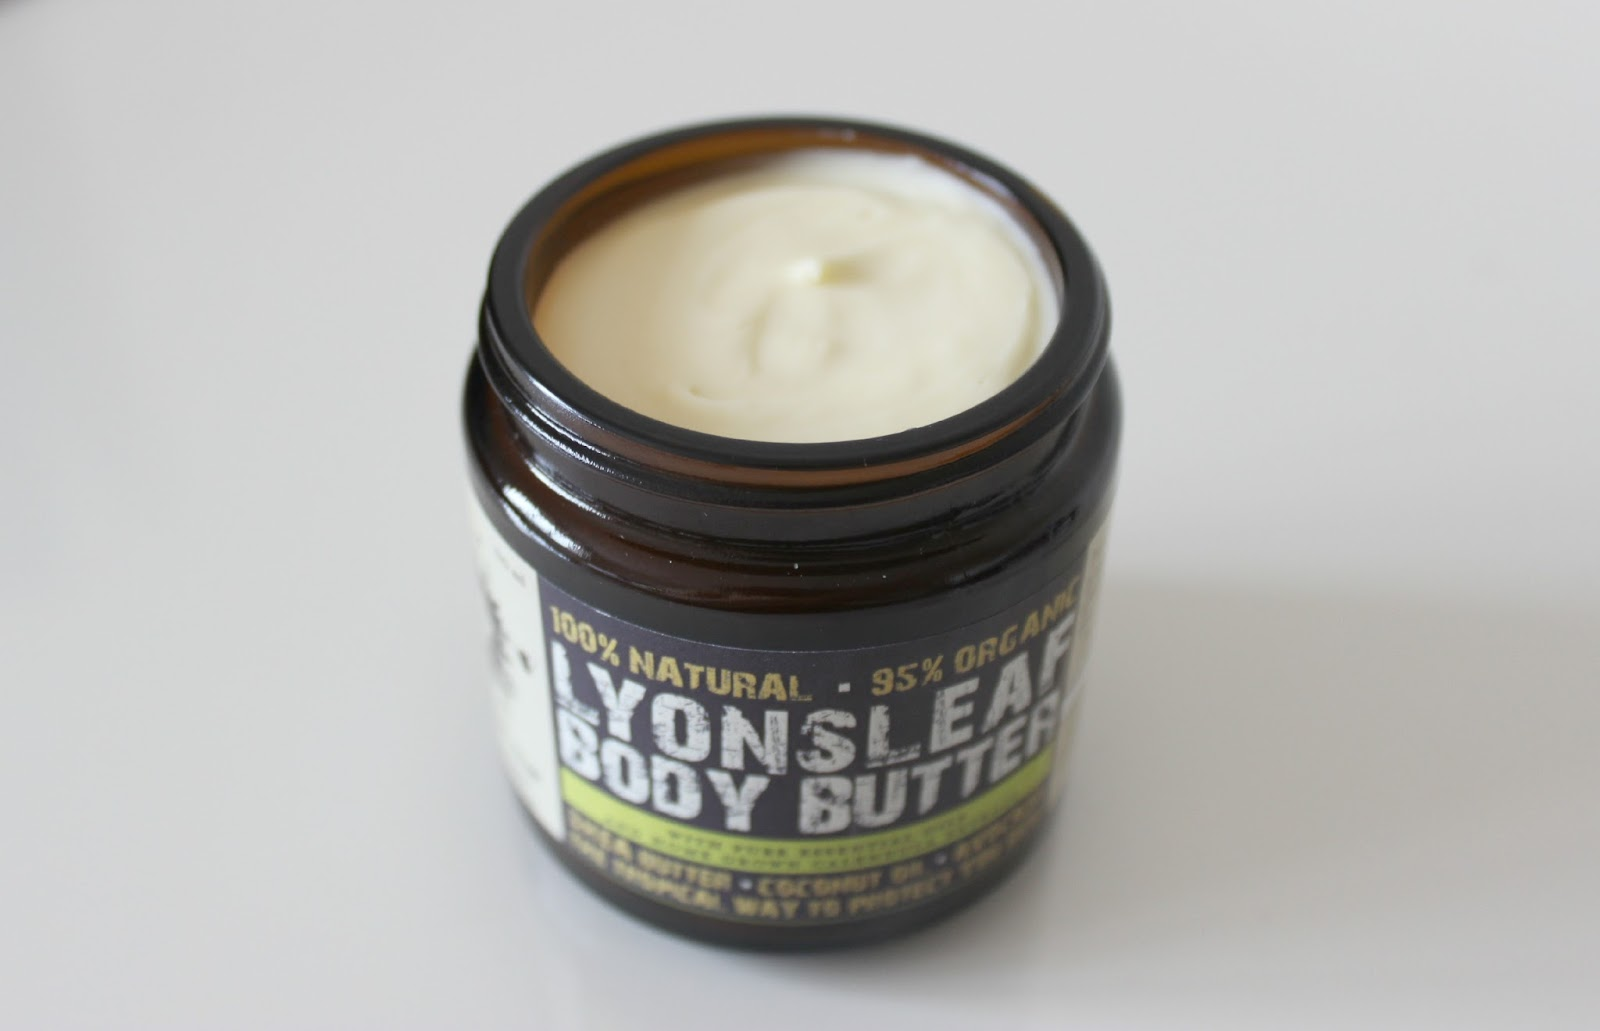 A picture of the Lyonsleaf Natural Body Butter